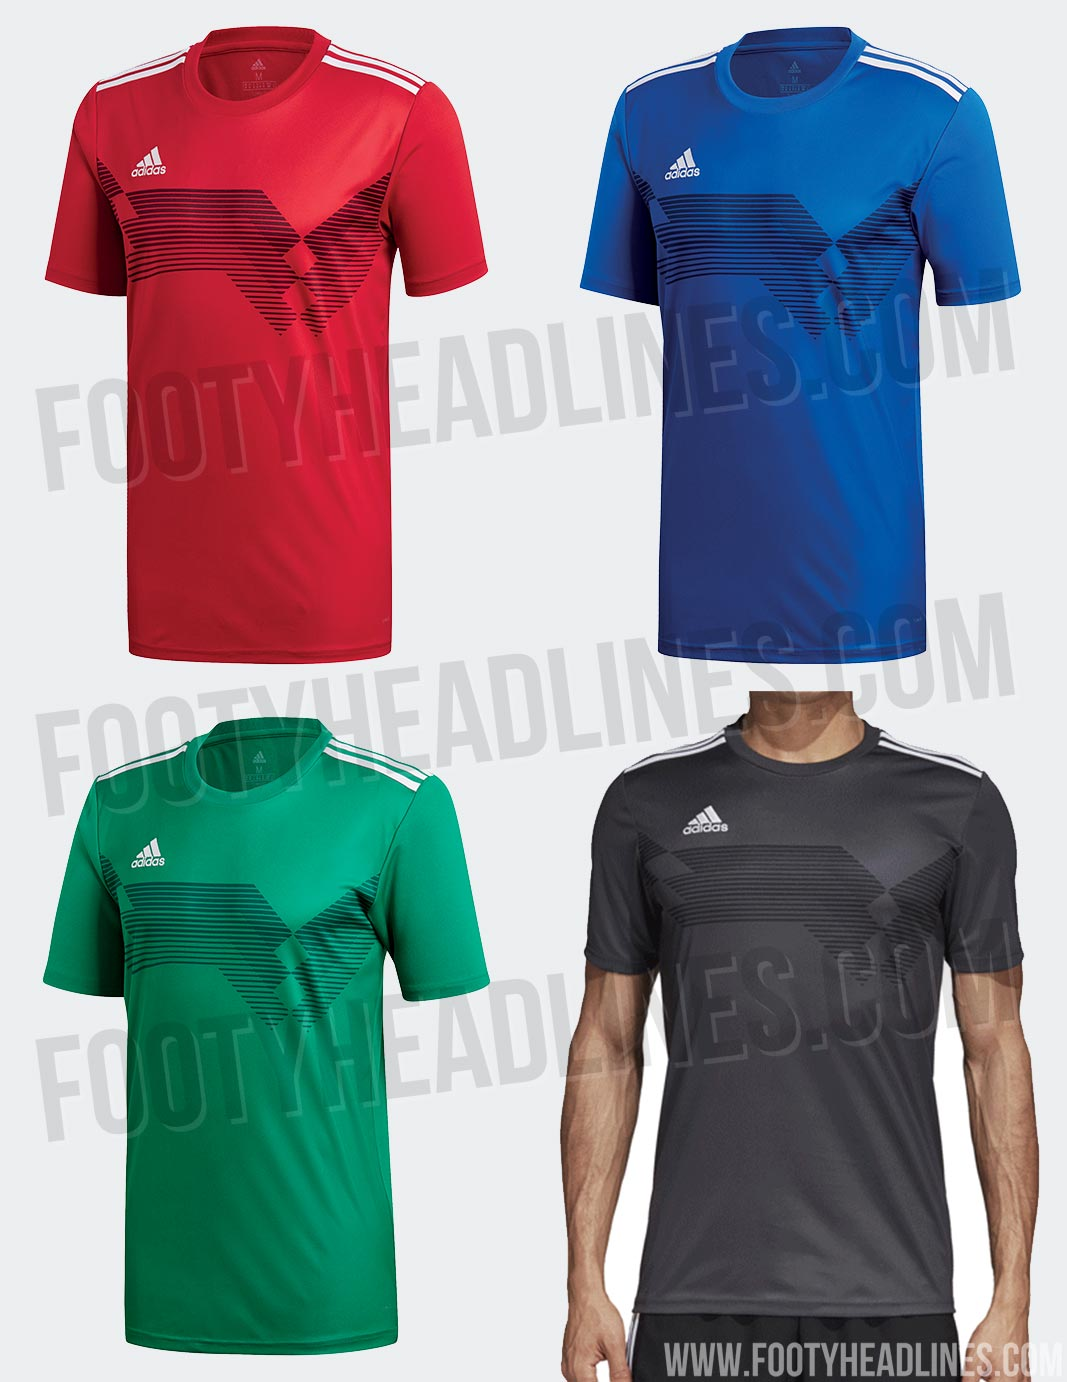 f71c475ca753 Adidas 2019-20 Teamwear Kits Released - Footy Headlines